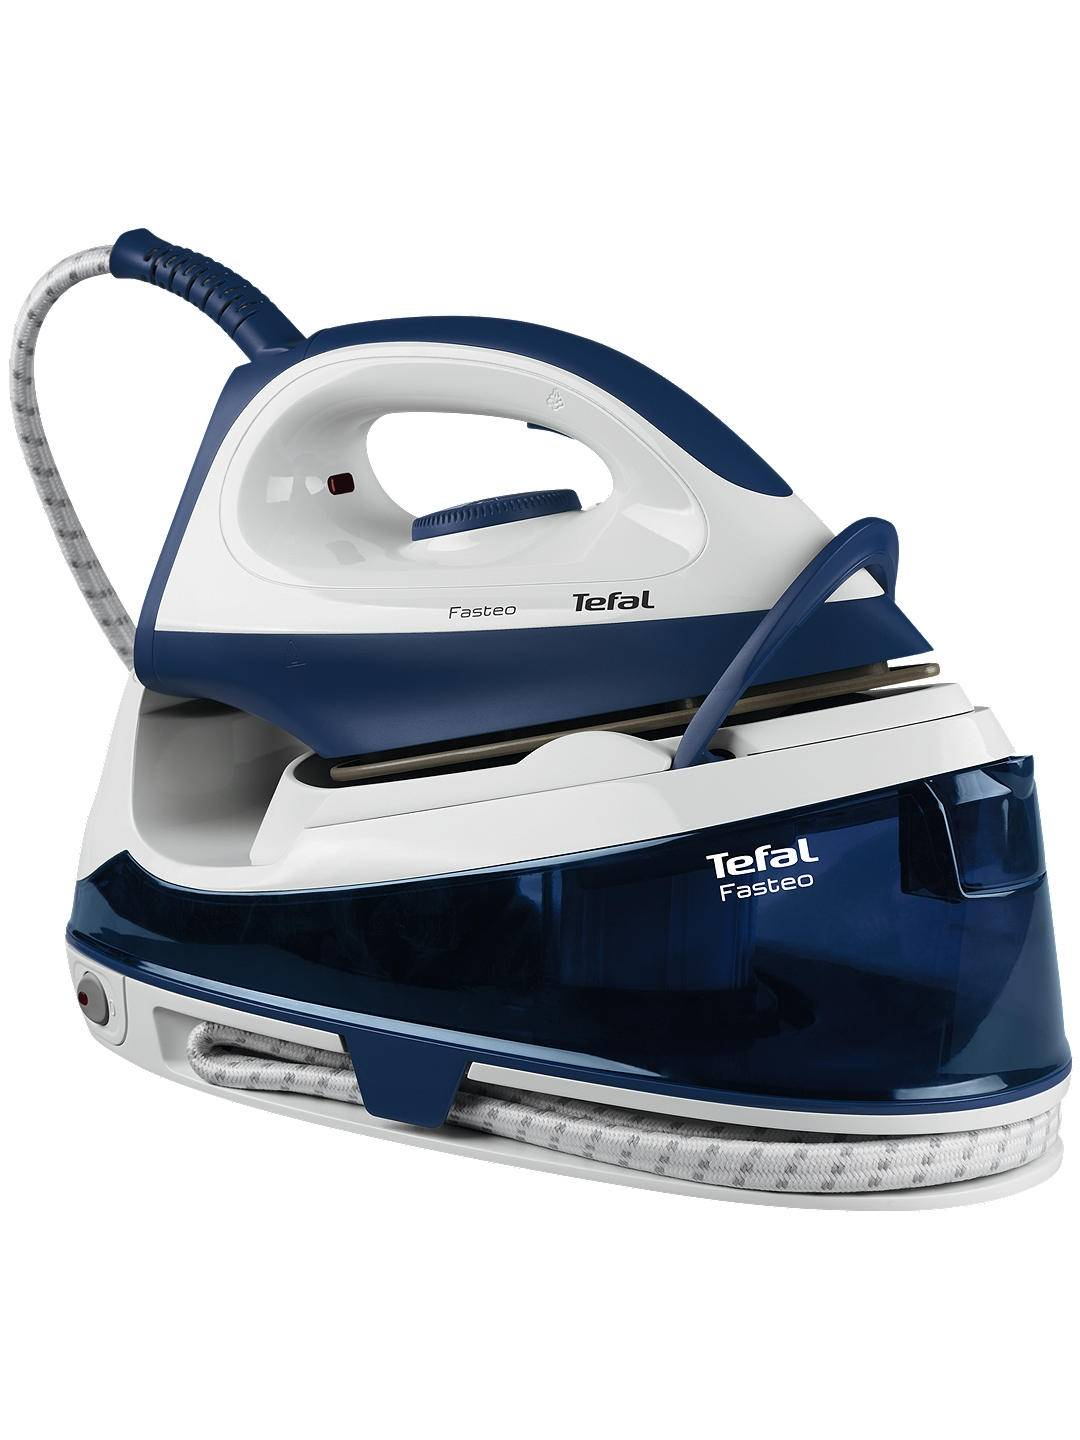 tefal fasteo sv6040 steam generator iron blue white